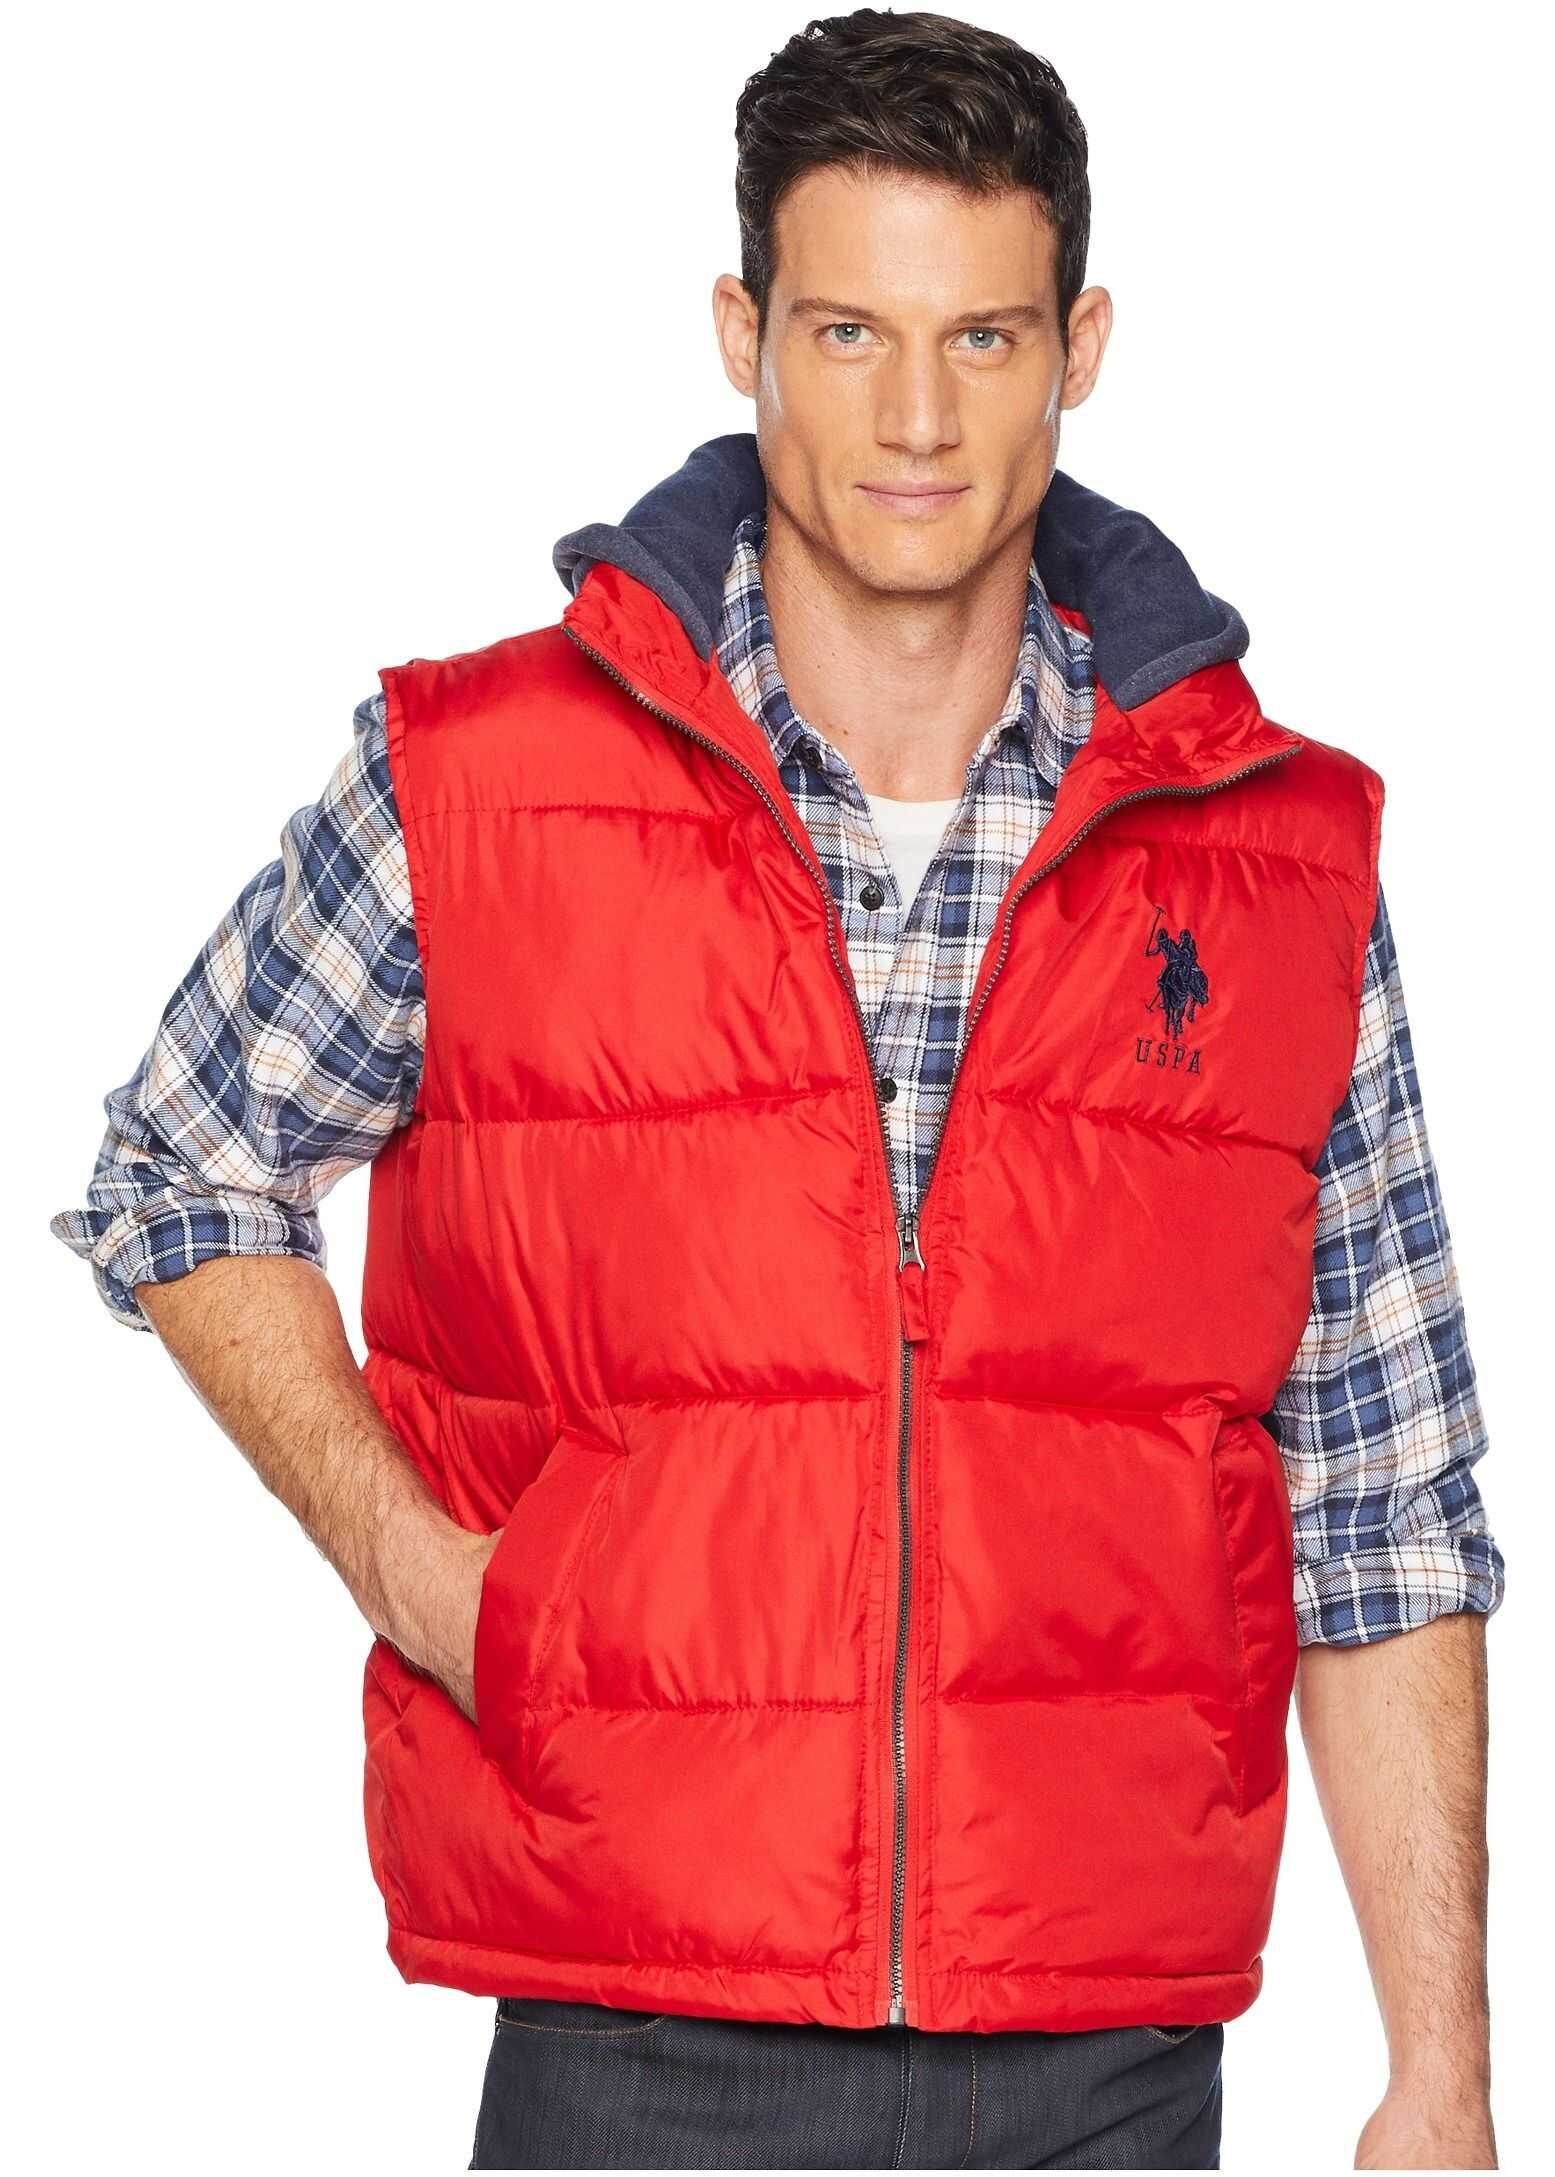 U.S. POLO ASSN. Hooded Basic Vest Engine Red